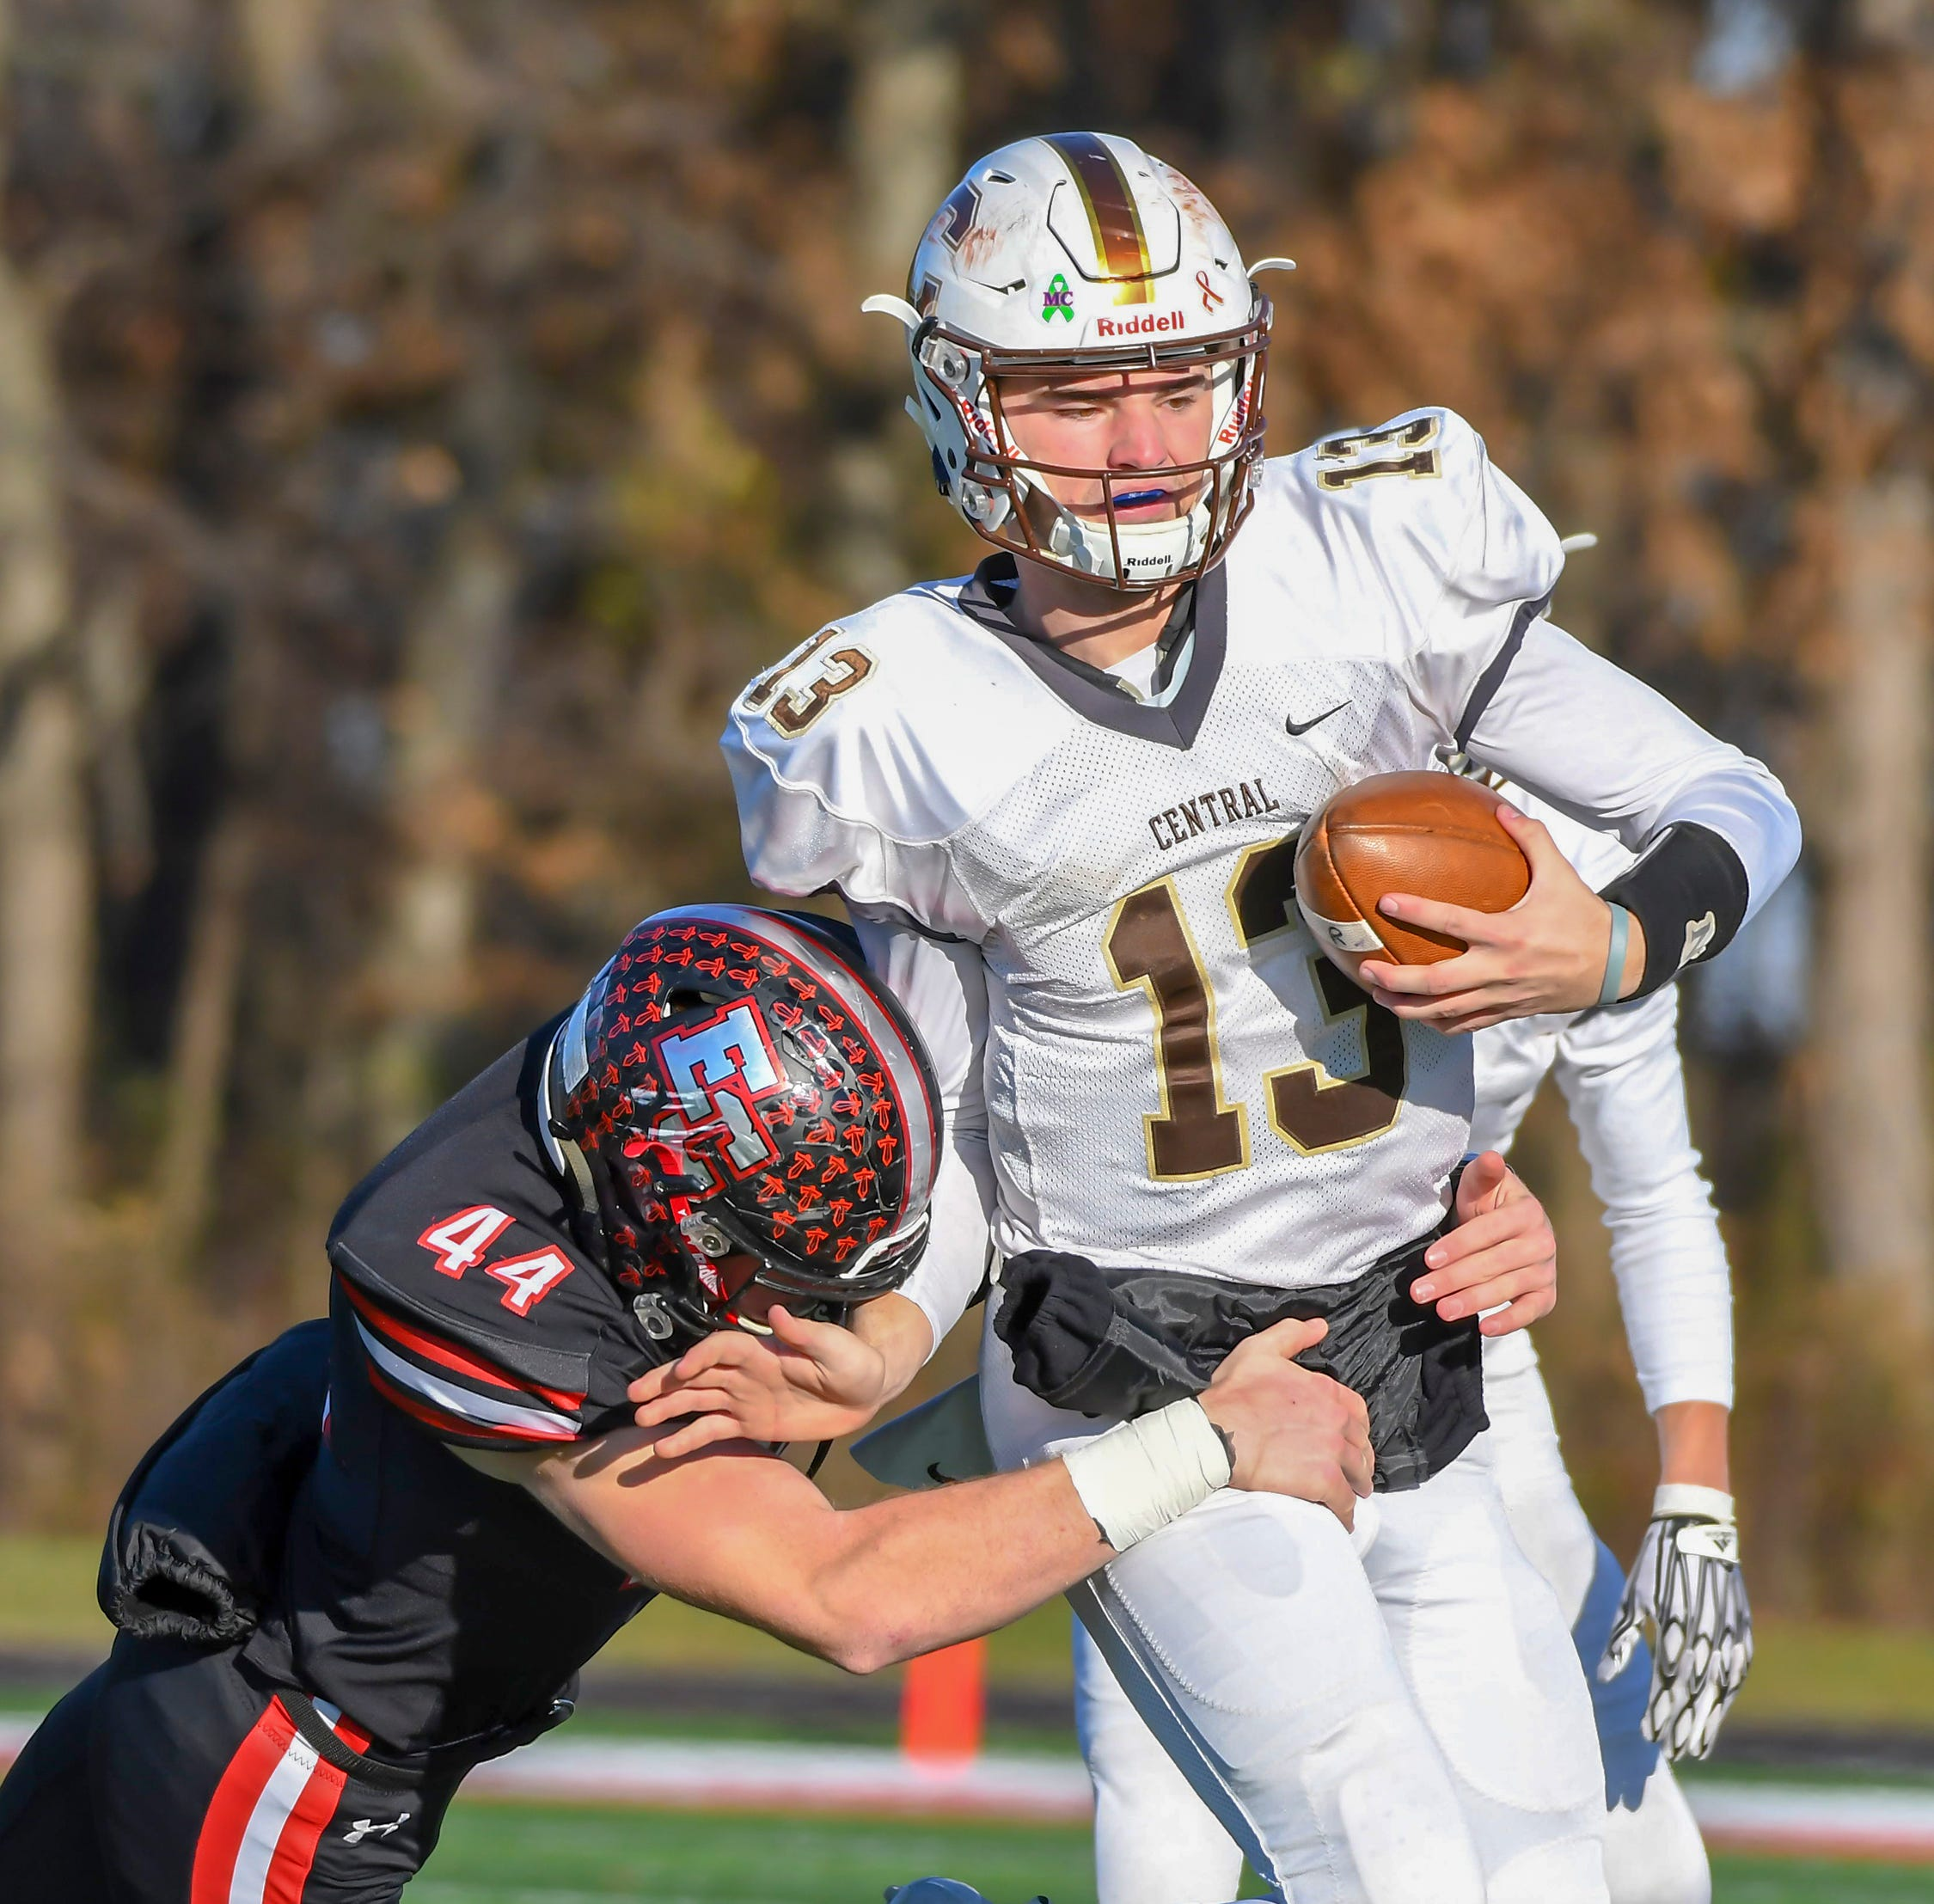 Updates from Evansville-area semistate football games